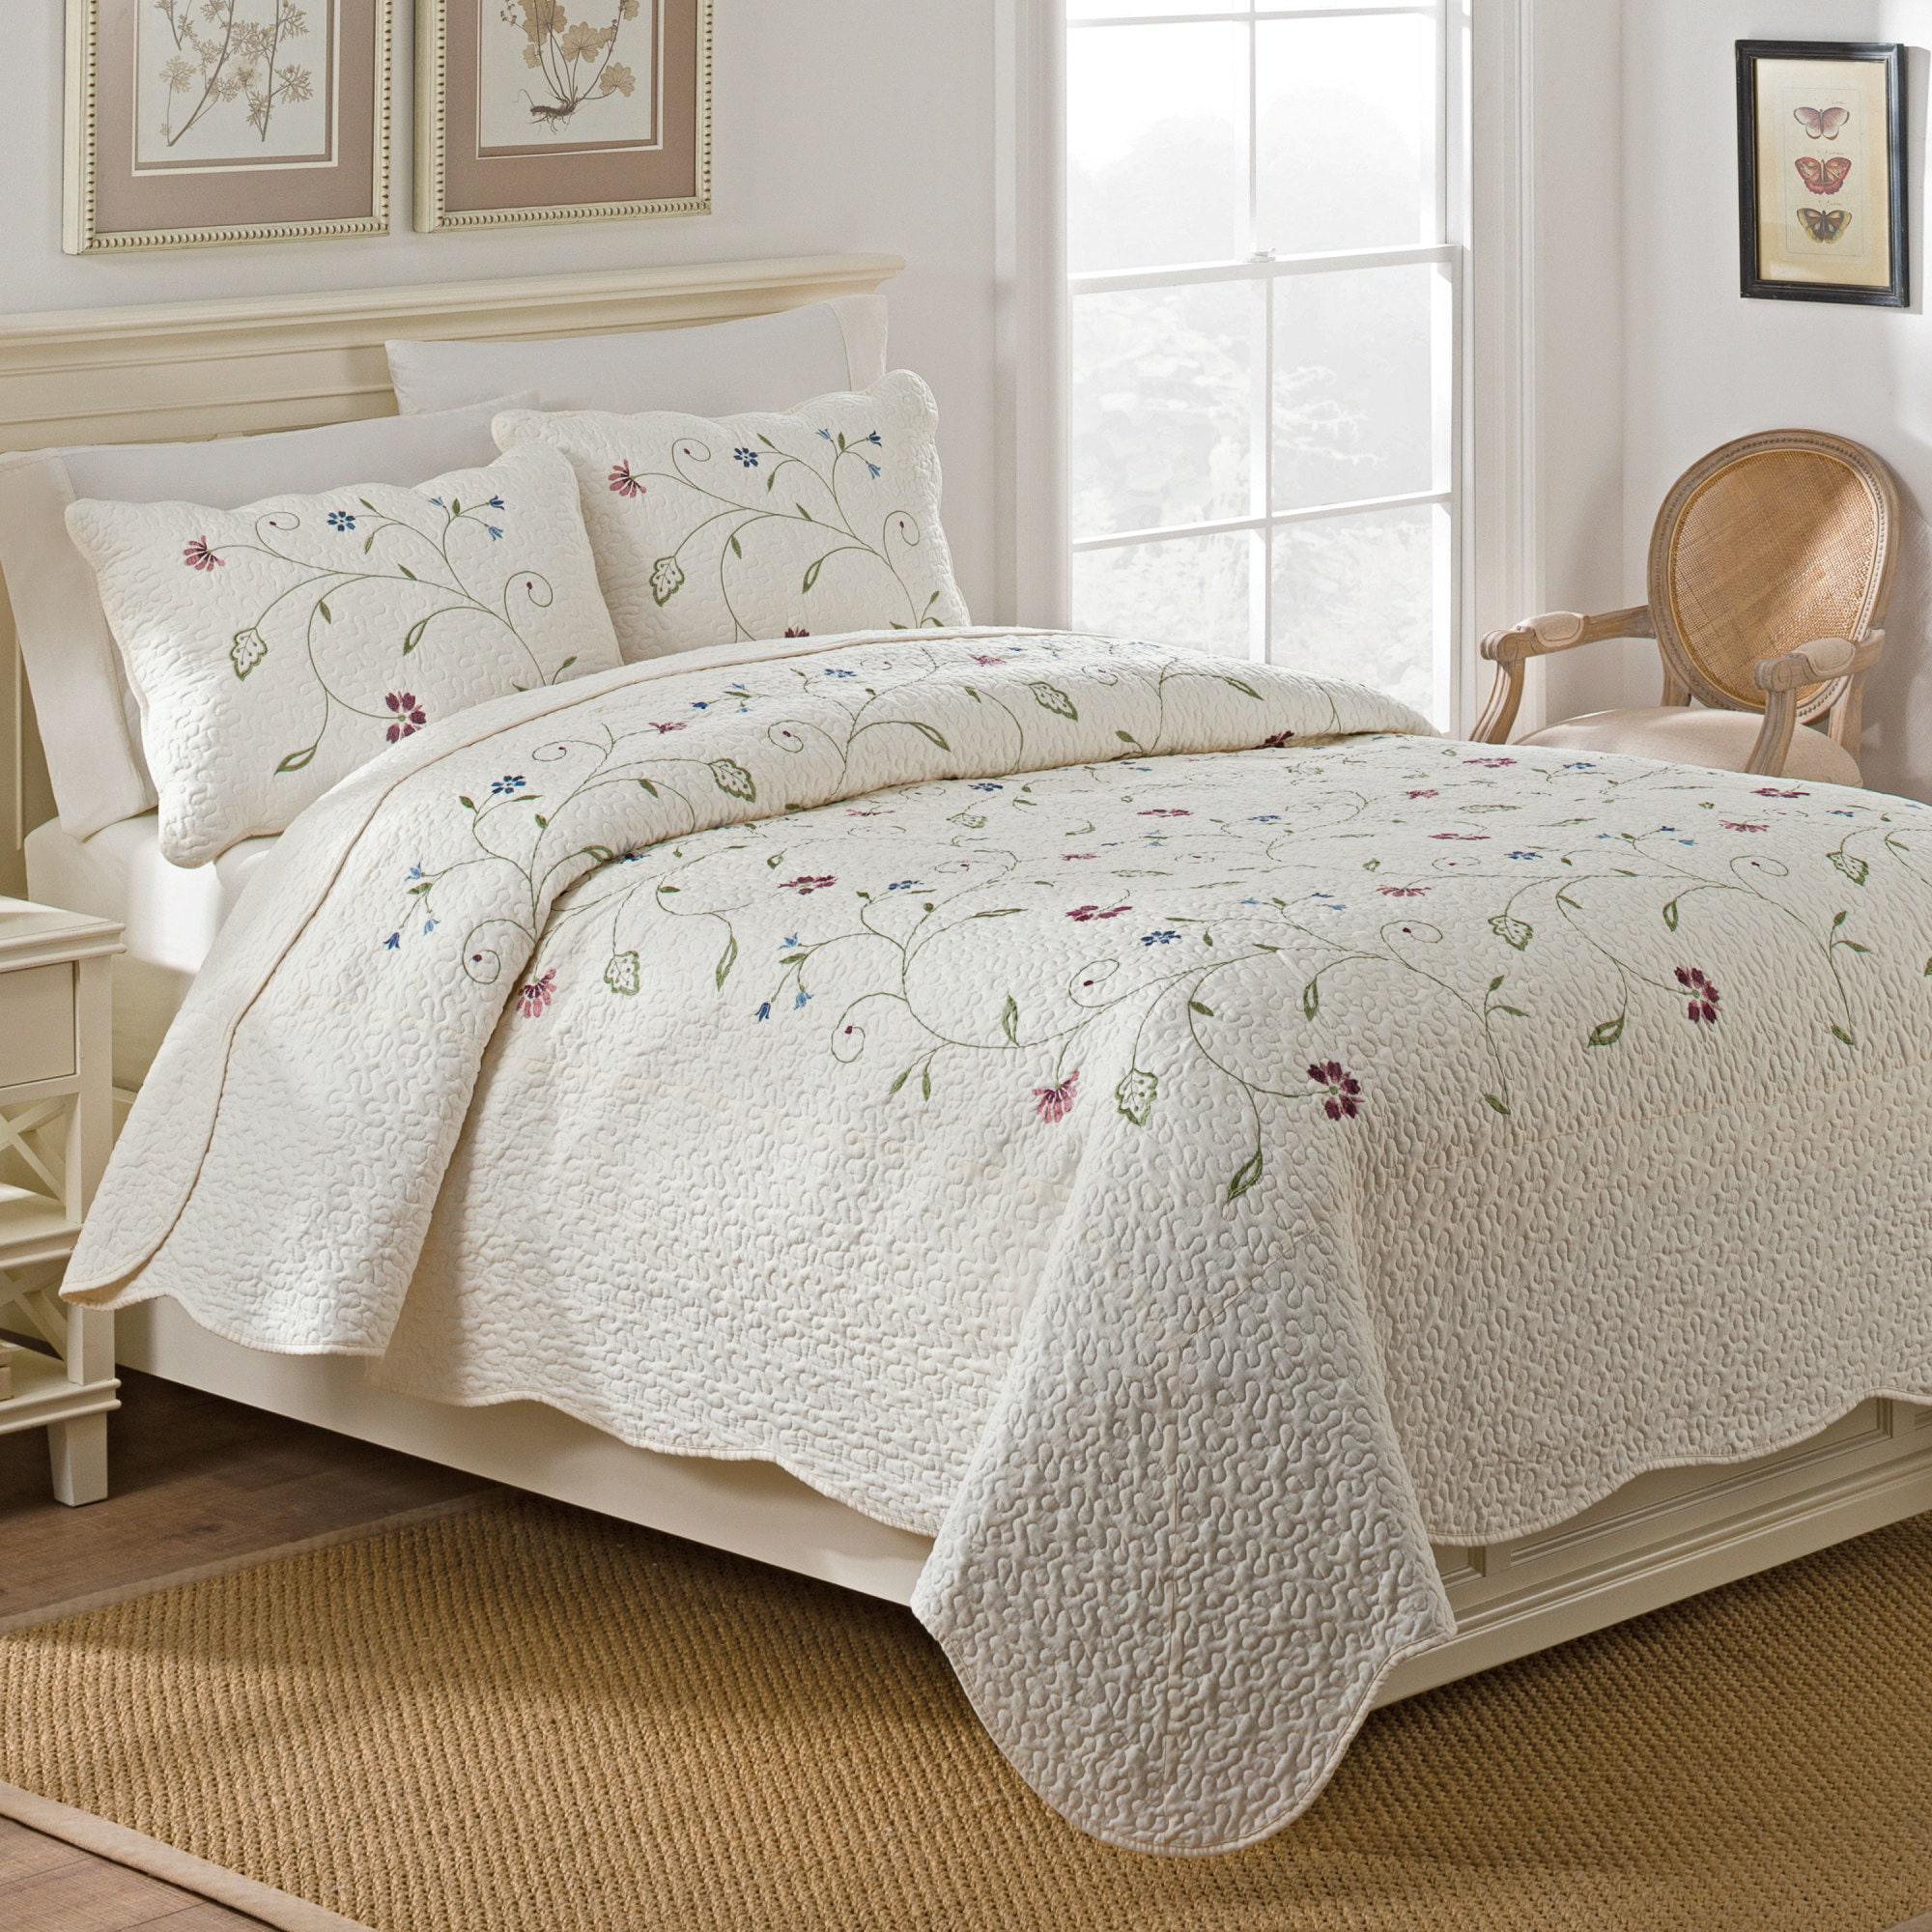 Maison Rouge Merrill Embroidered Quilt Set Free Shipping